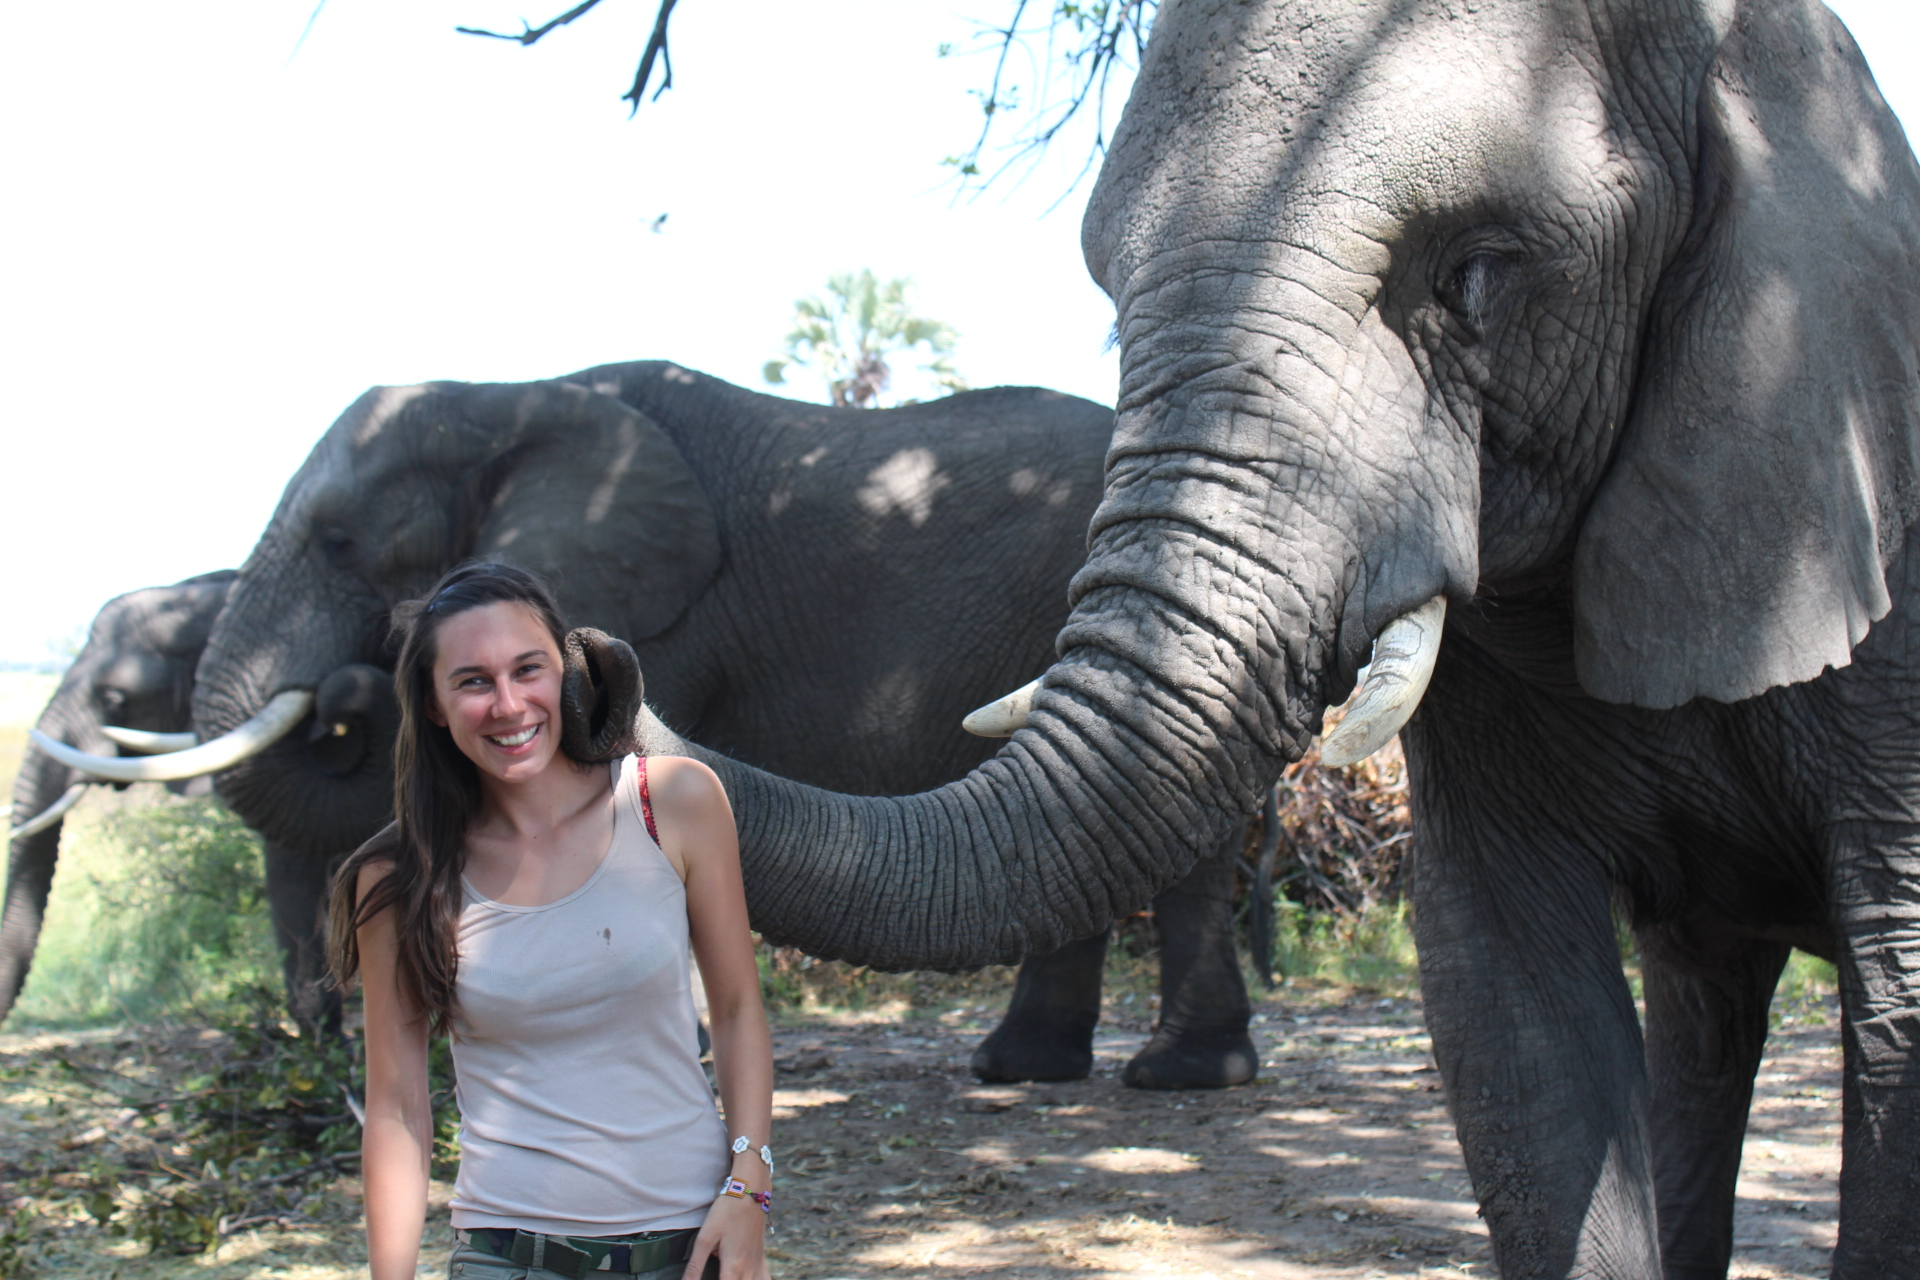 Getting up close and personal with the elephants at Baines' Camp